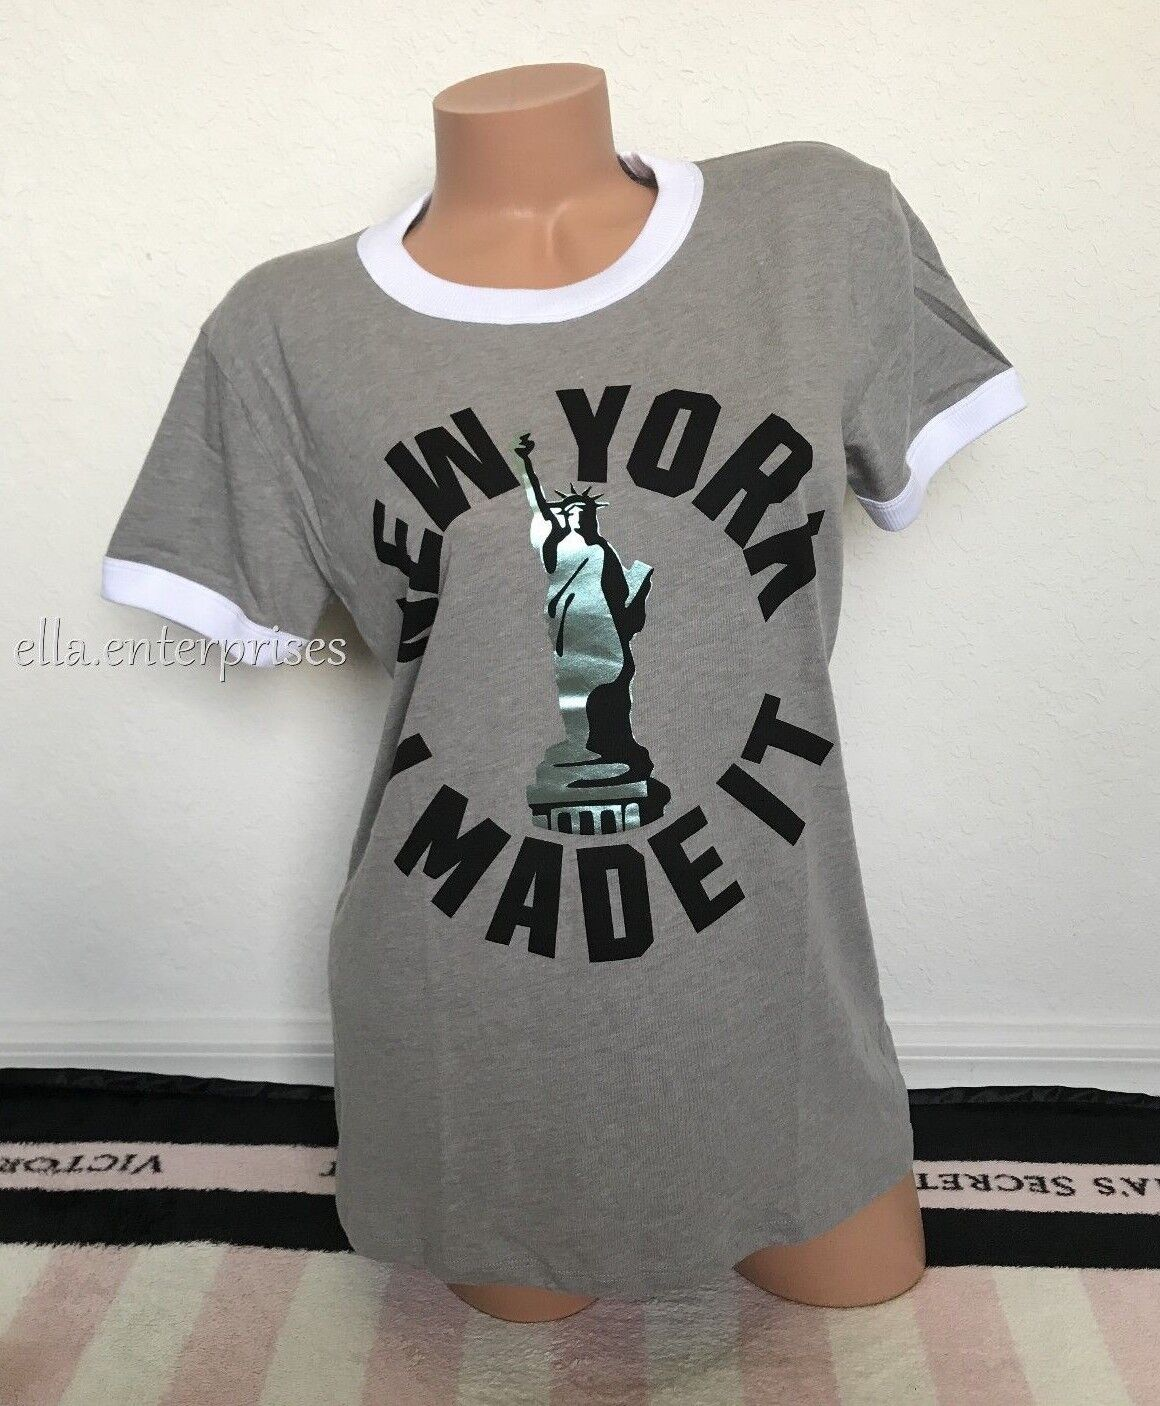 Victoria's Secret Rosa New York I Made It NY State Of Mind Ringer Crew Tee - M